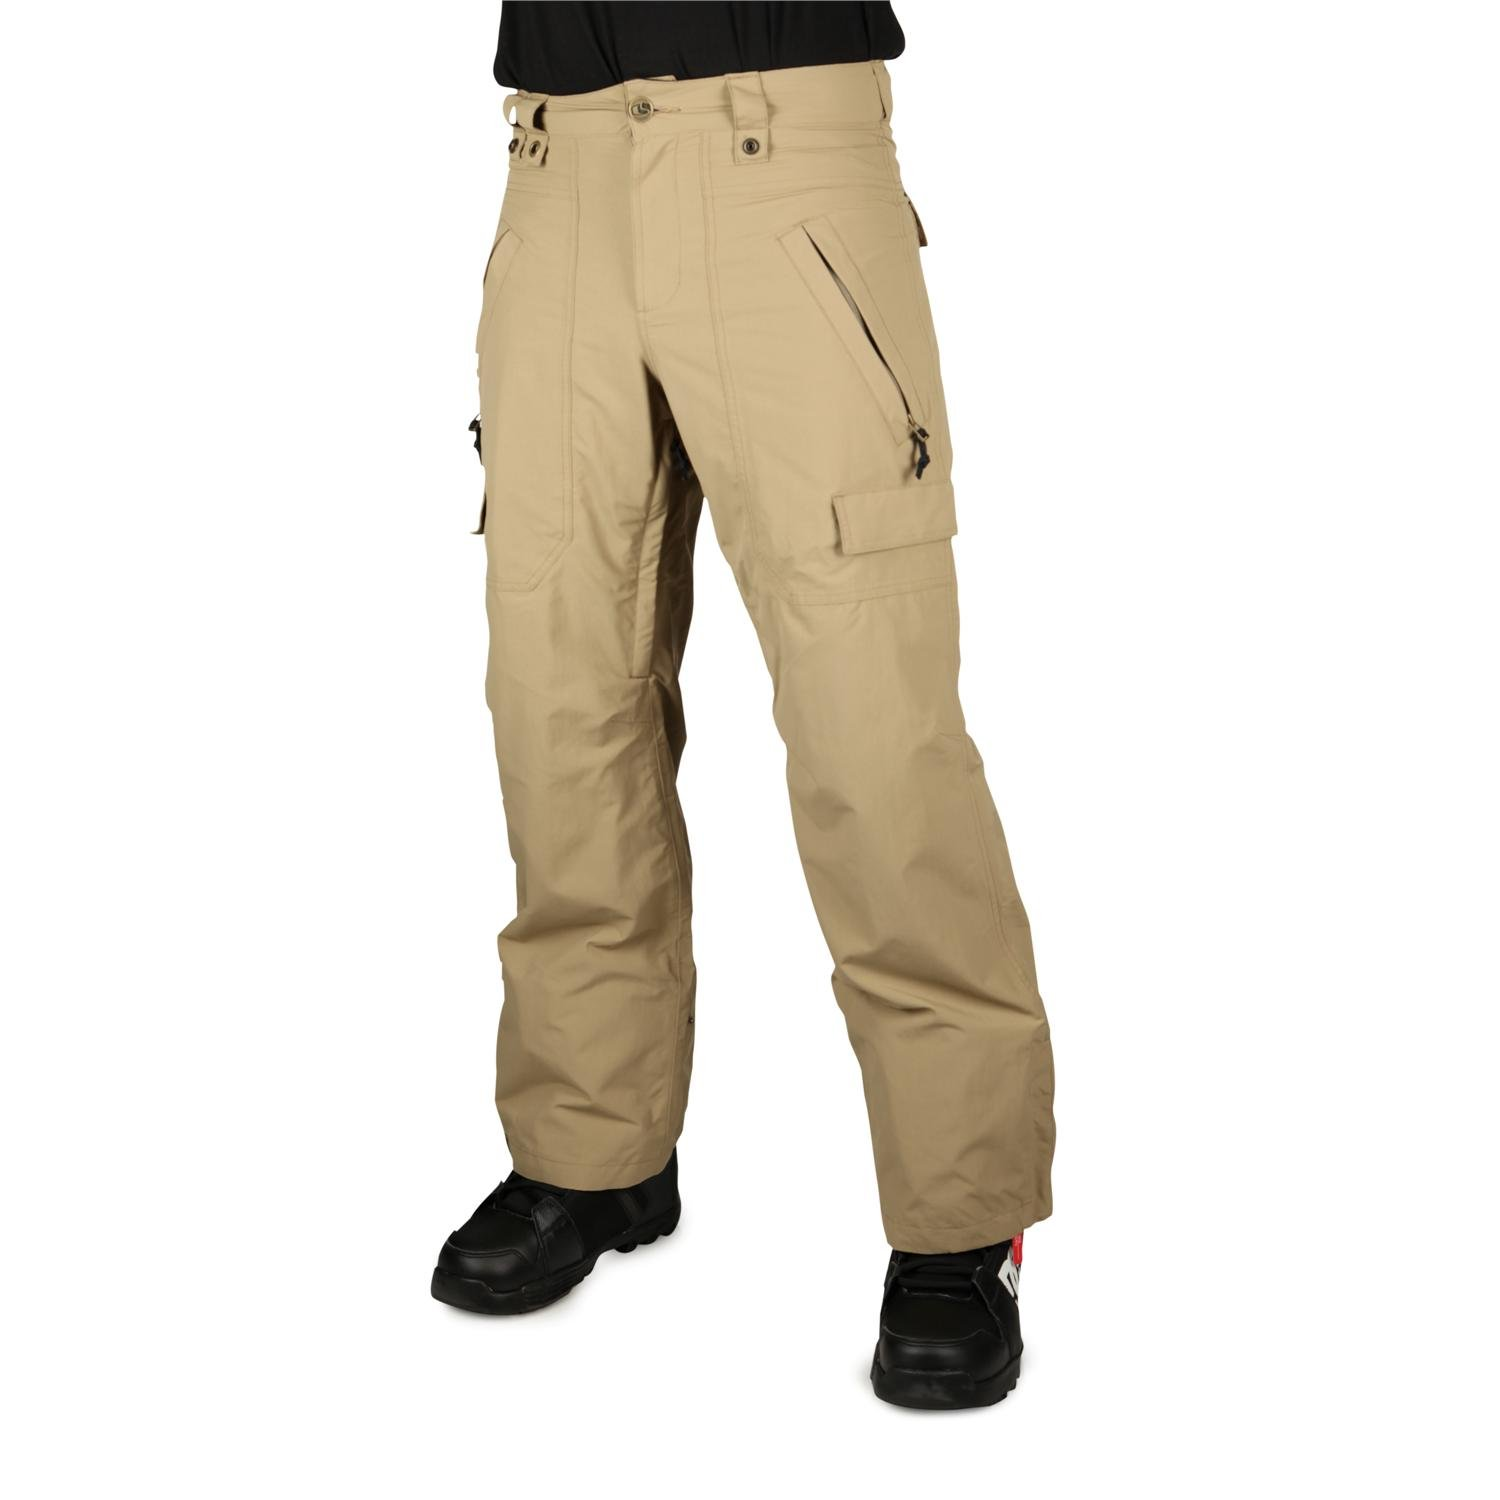 Bonfire Burly Pants - Youth/Boys Size (S) - Canvas by Bonfire